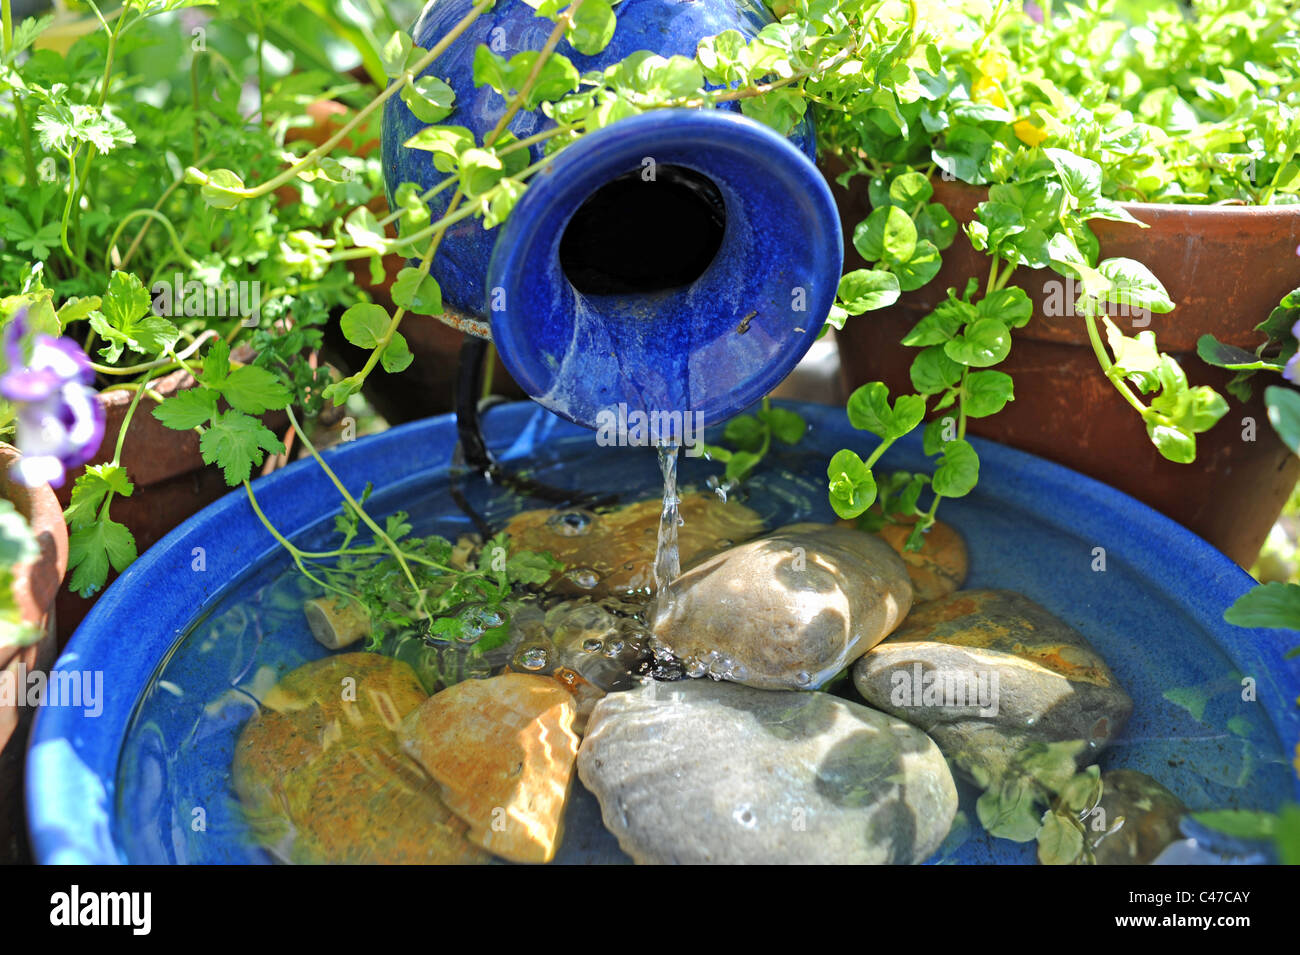 A Solar Powered Small Water Feature In British Garden